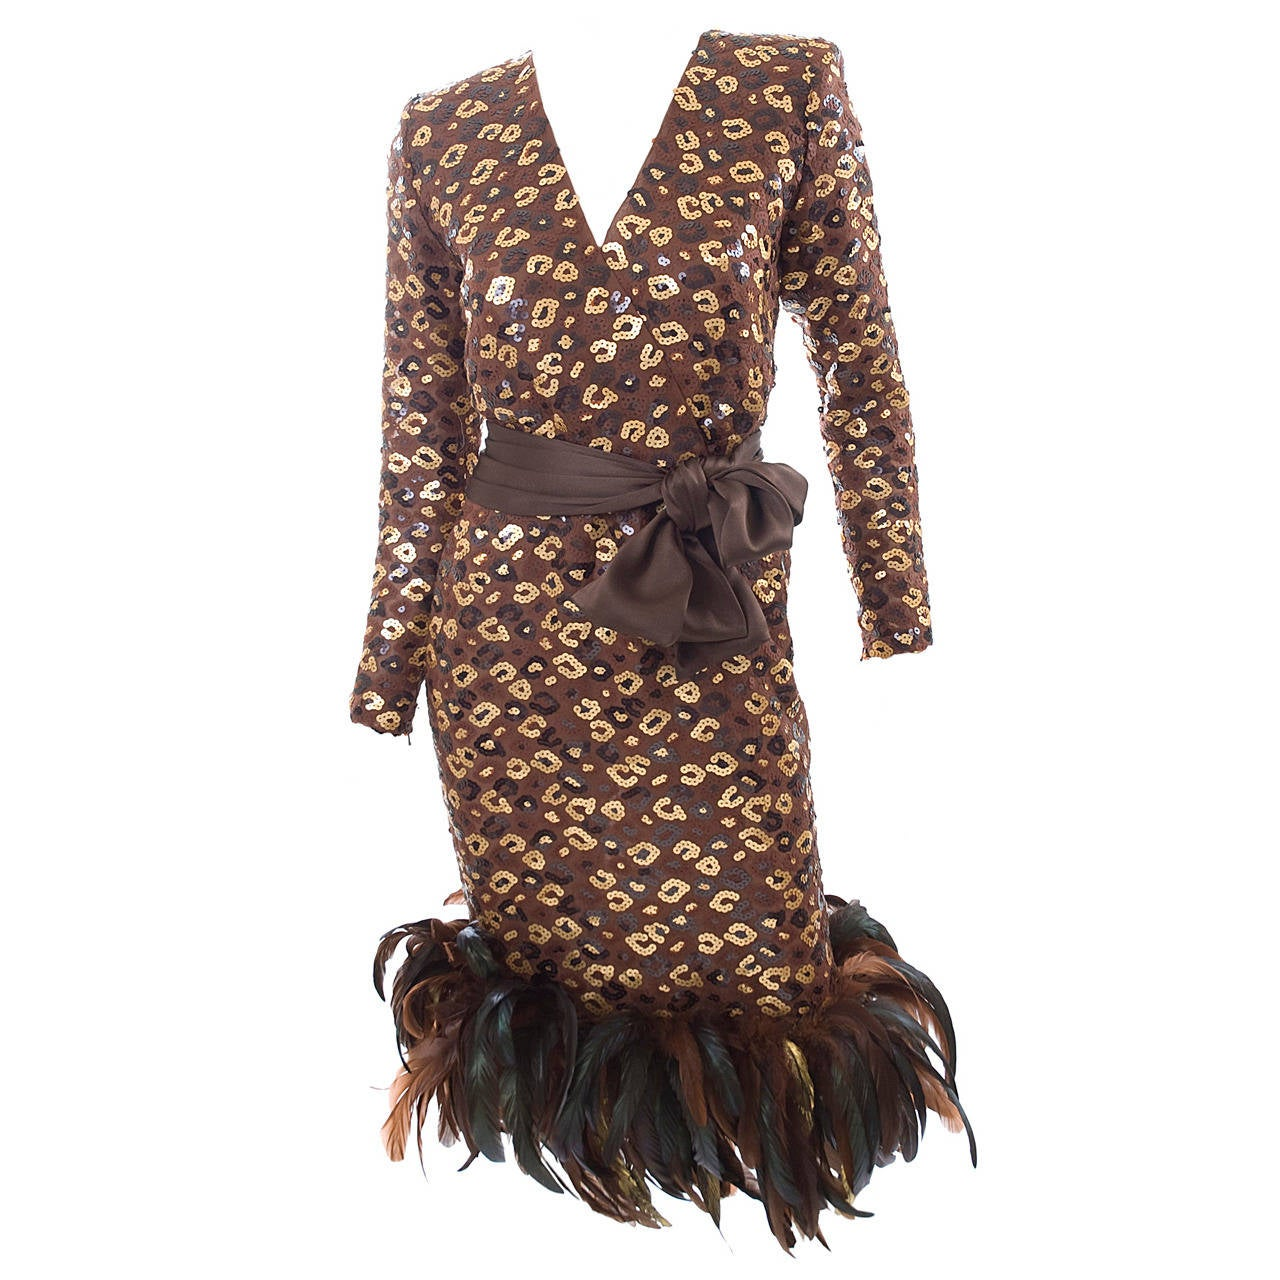 1986 Givenchy Dress with Sequins and Feathers 1